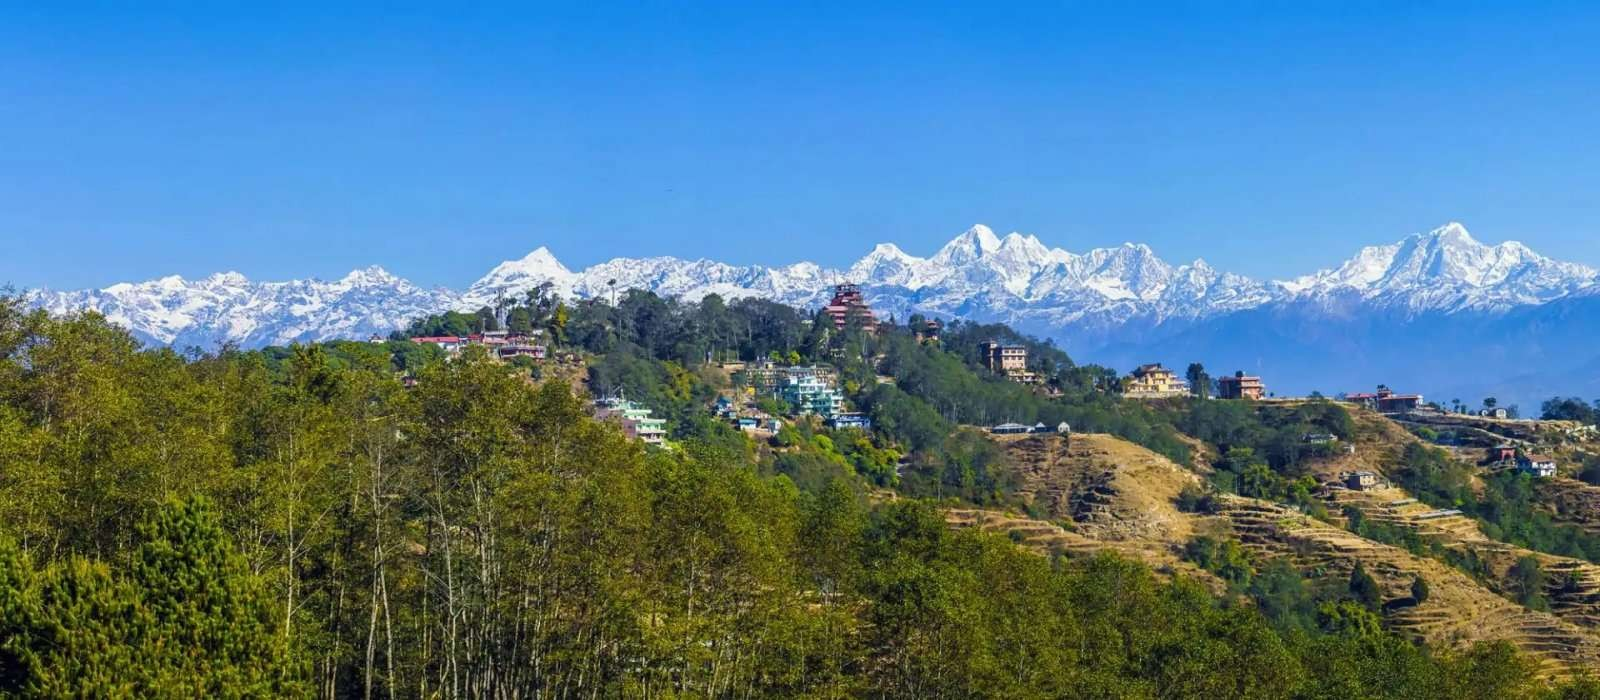 Nagarkot Dhulikhel Day Hiking